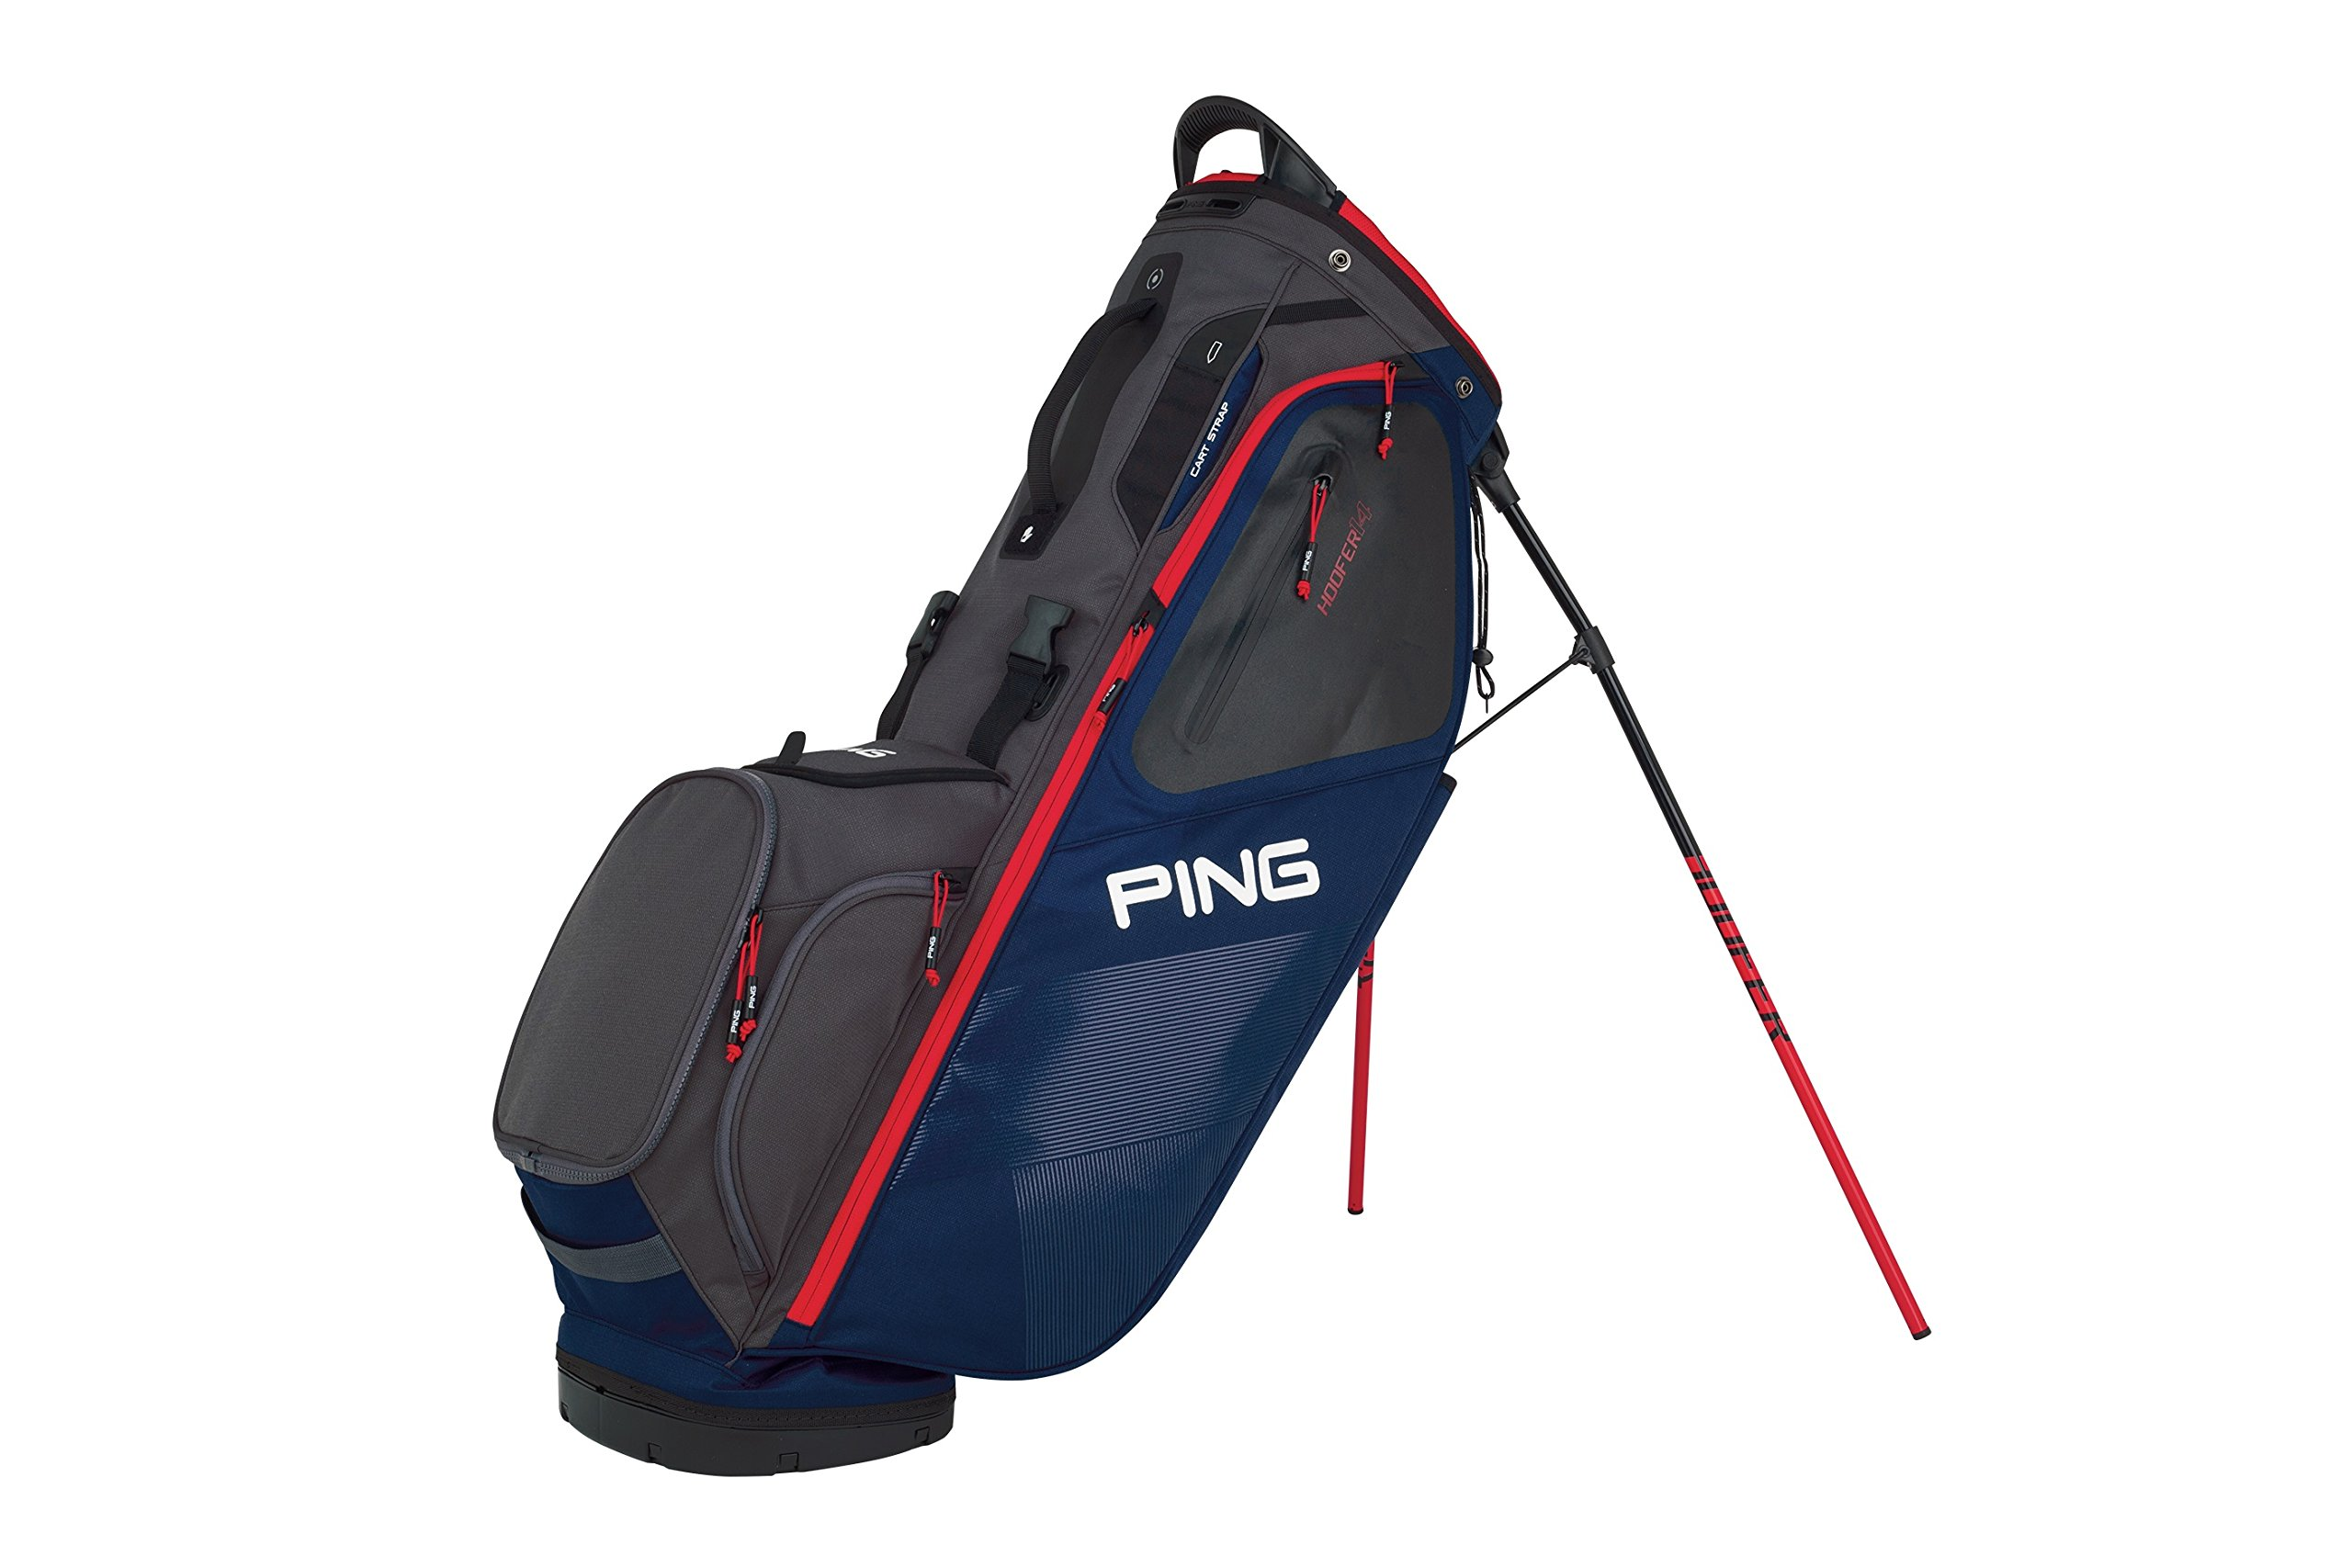 PING 2018 HOOFER 14 181 STAND GOLF BAG 06 NAVY/GRAPHITE/RED